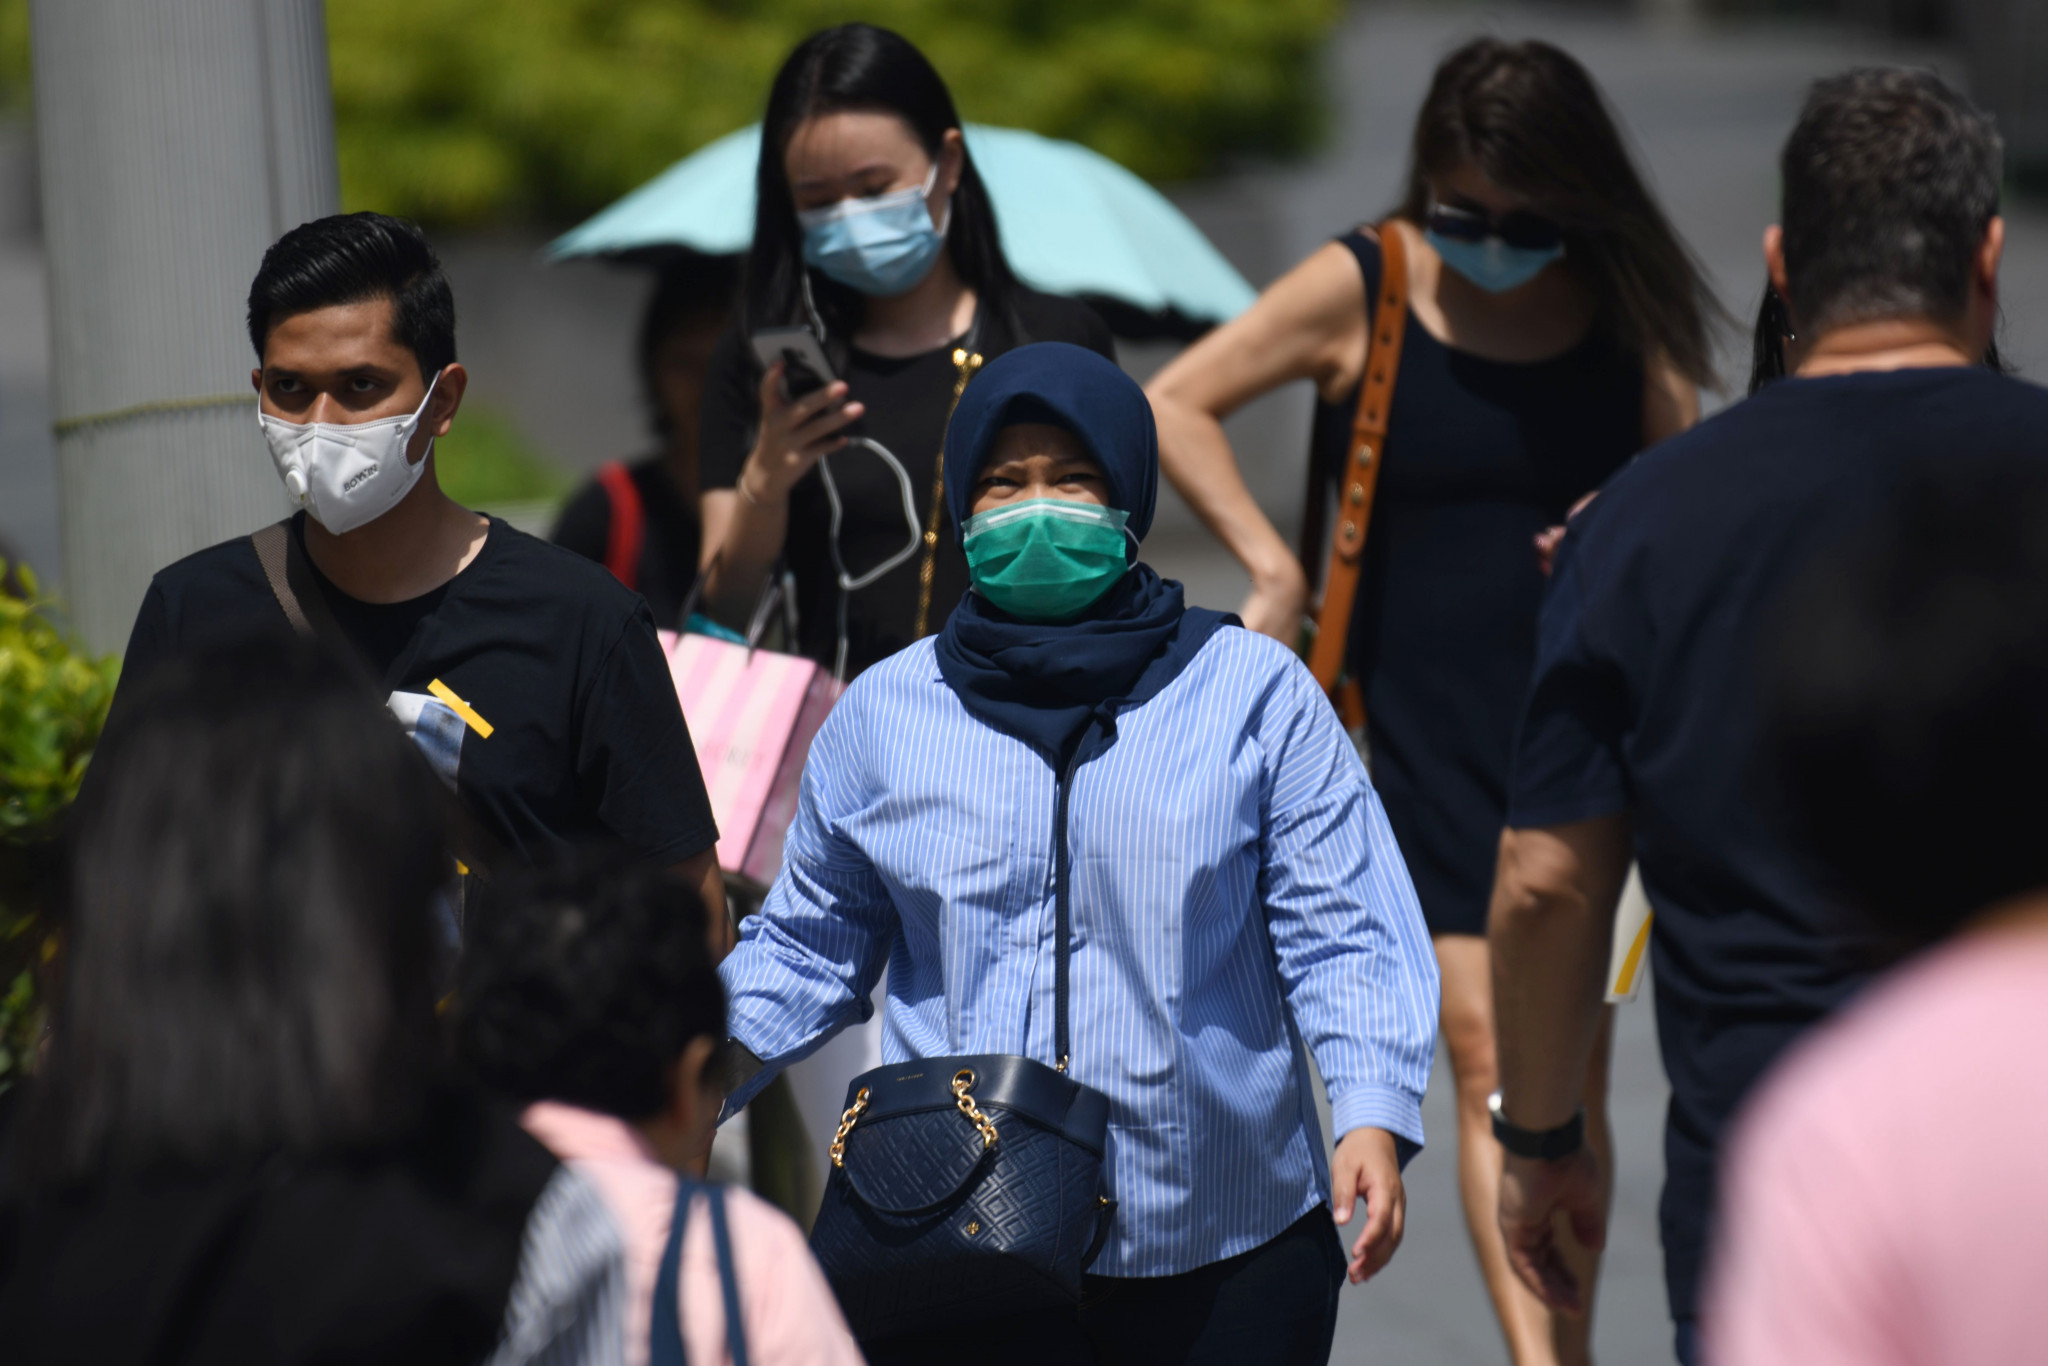 People in Singapore wear masks amid the coronavirus outbreak ©Getty Images